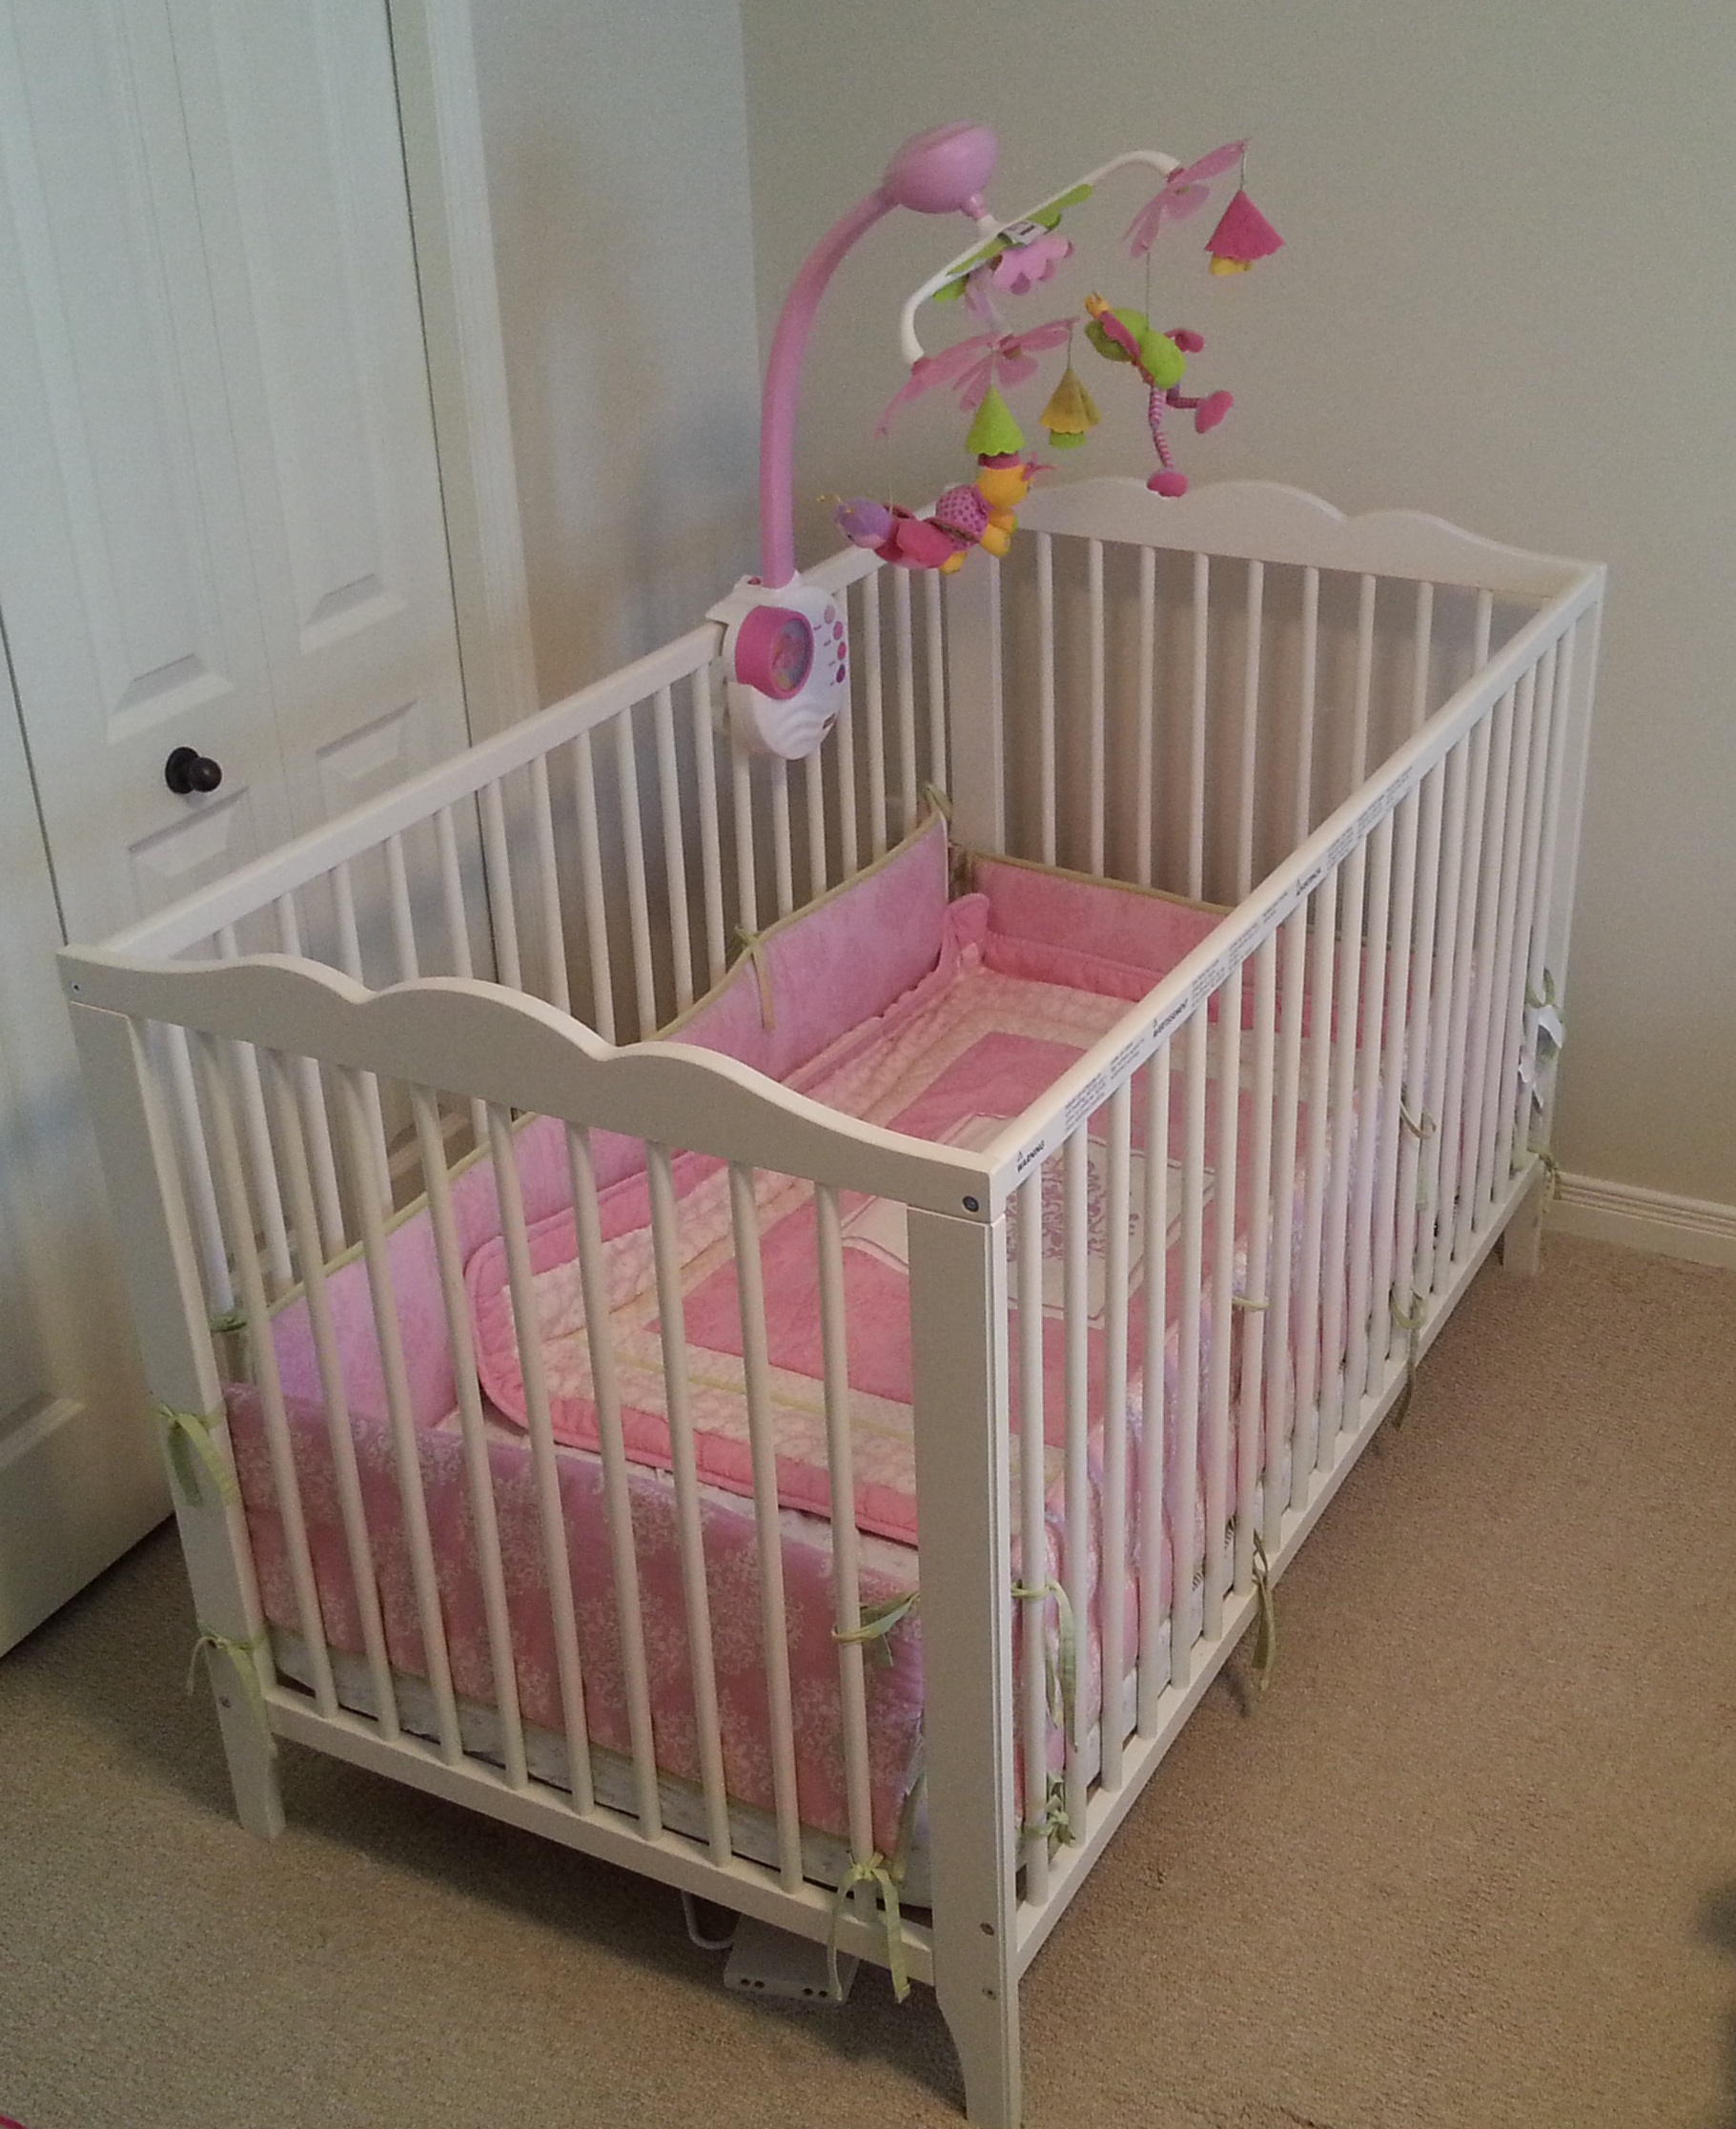 Ikea Crib Baby Cribs Ikea: Designs, Materials, And Features | Homesfeed